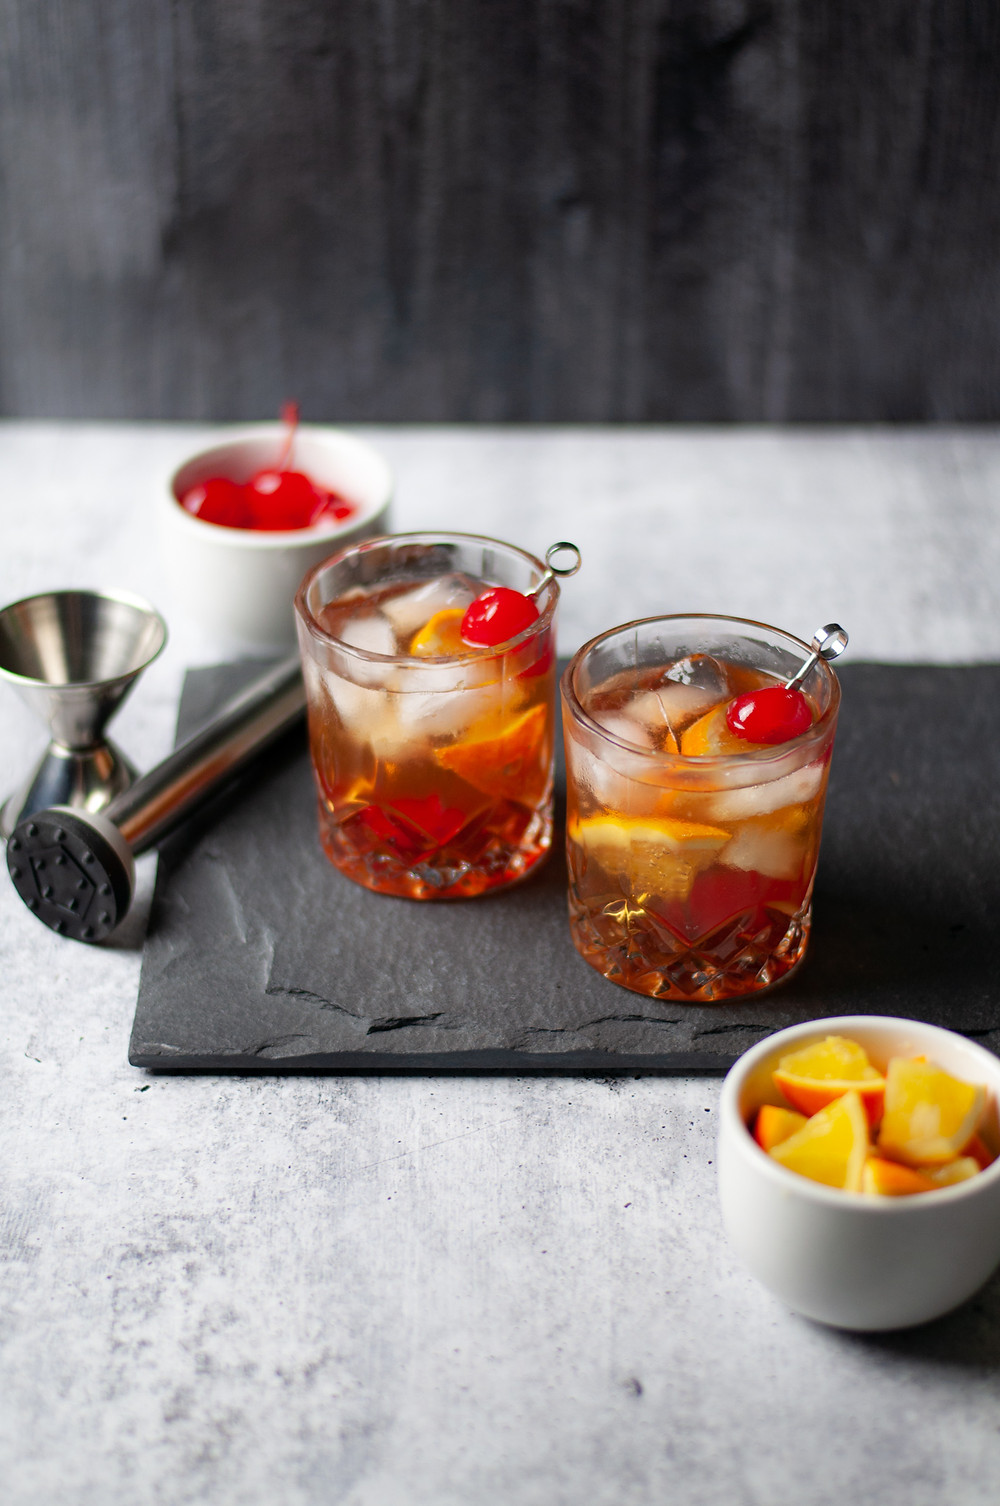 Two rocks glasses filled with this classic Wisconsin Brandy Old Fashioned Recipe and garnished with orange slices and a cherry, next to a muddler and jigger